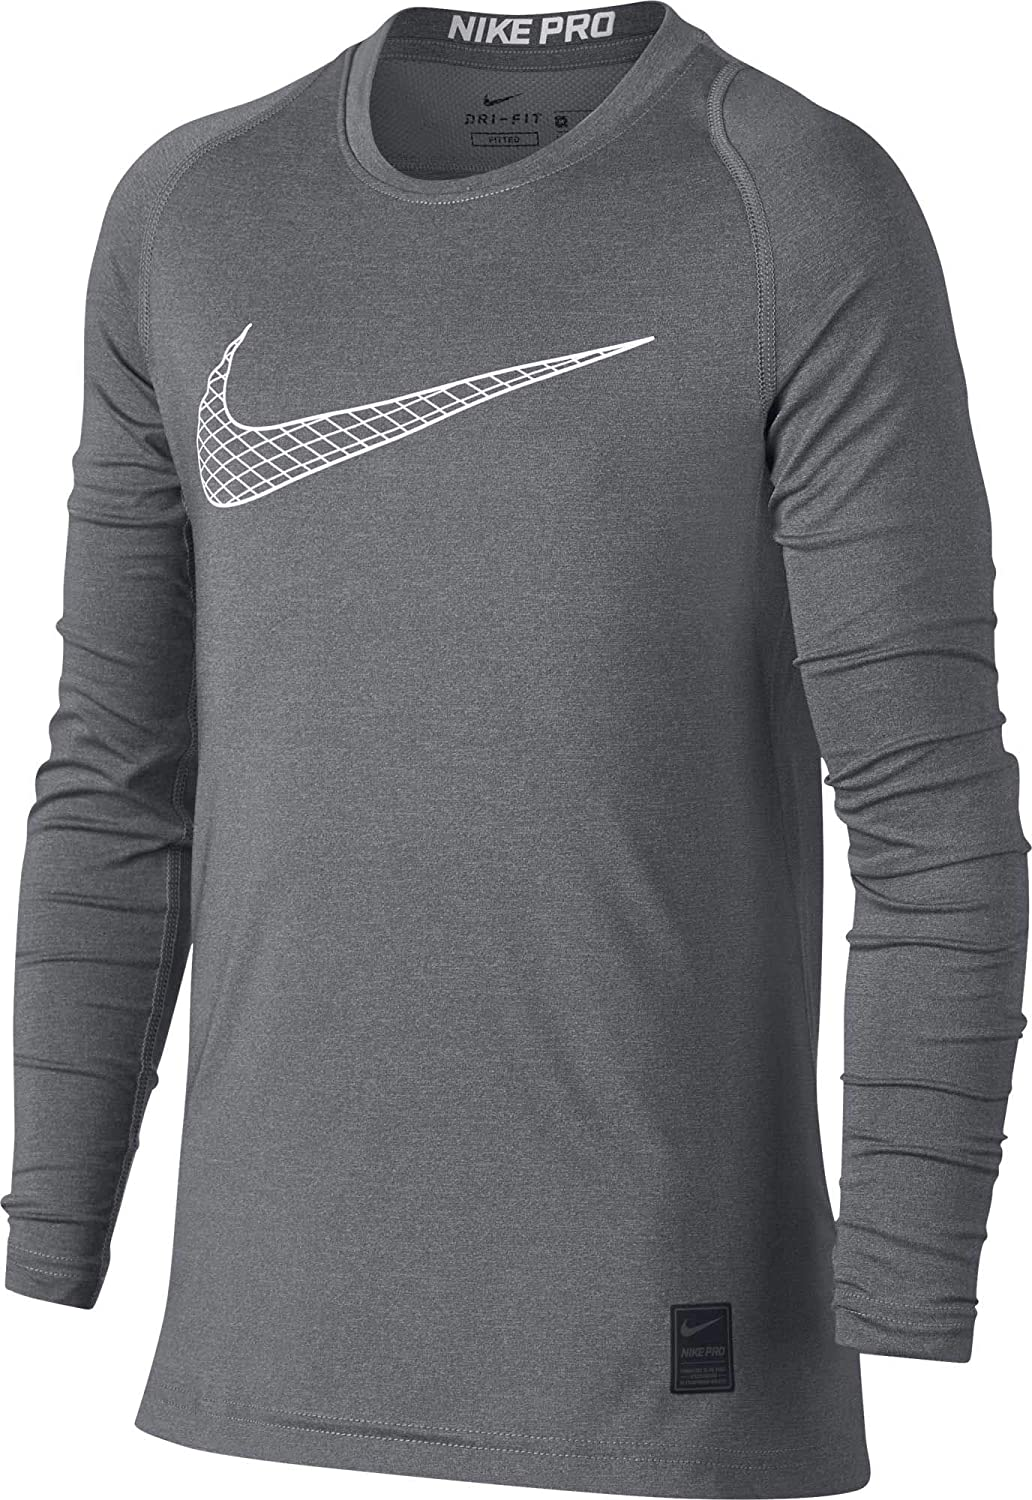 495f0f04 Amazon.com: Nike Kids Boy's Pro Fitted Long Sleeve Training Top (Little Kids/Big  Kids): Clothing